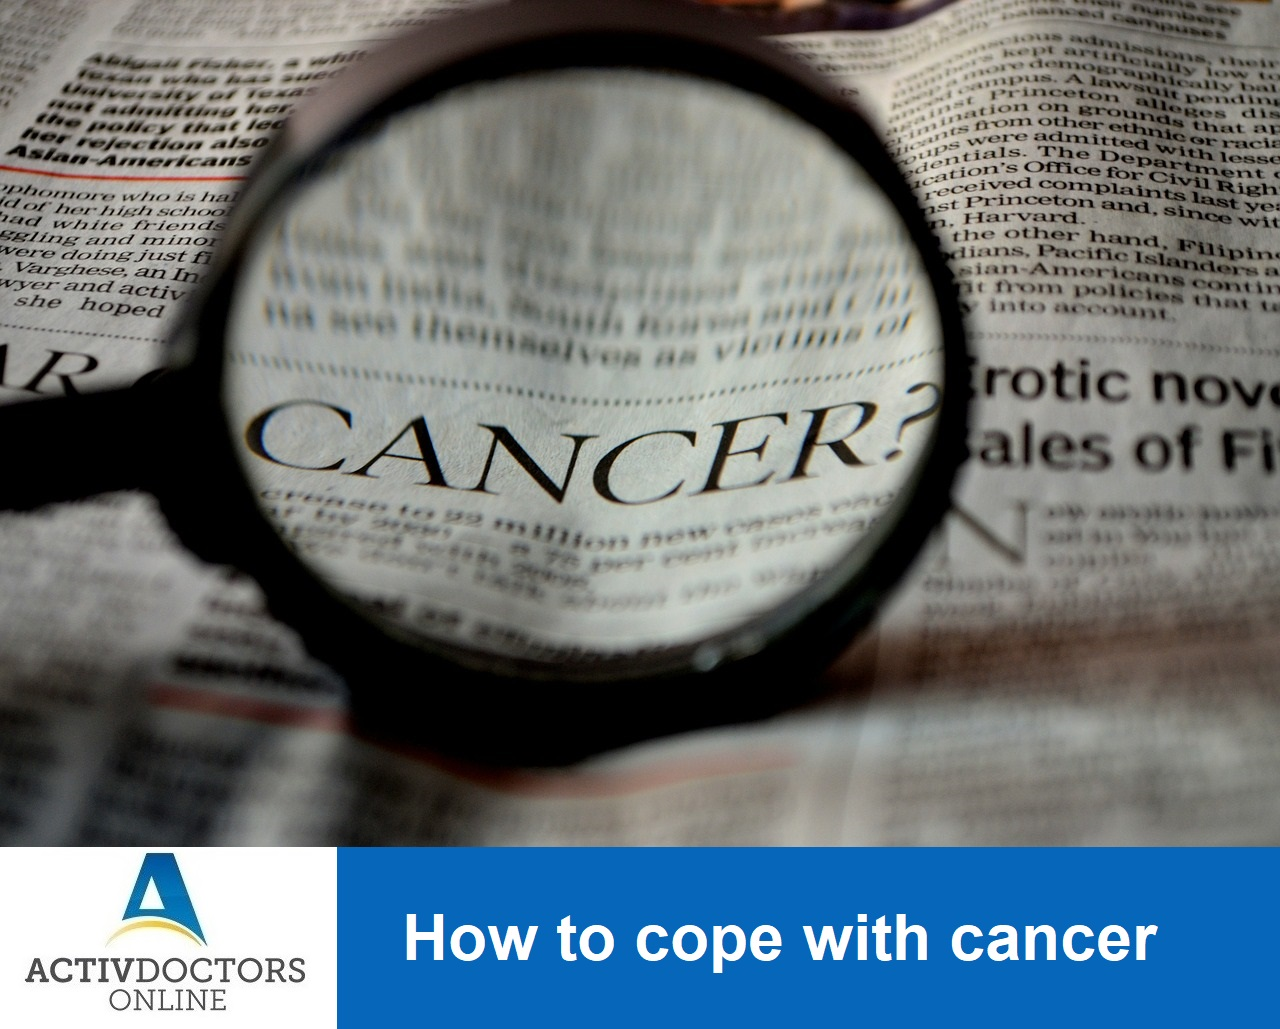 How to cope with cancer